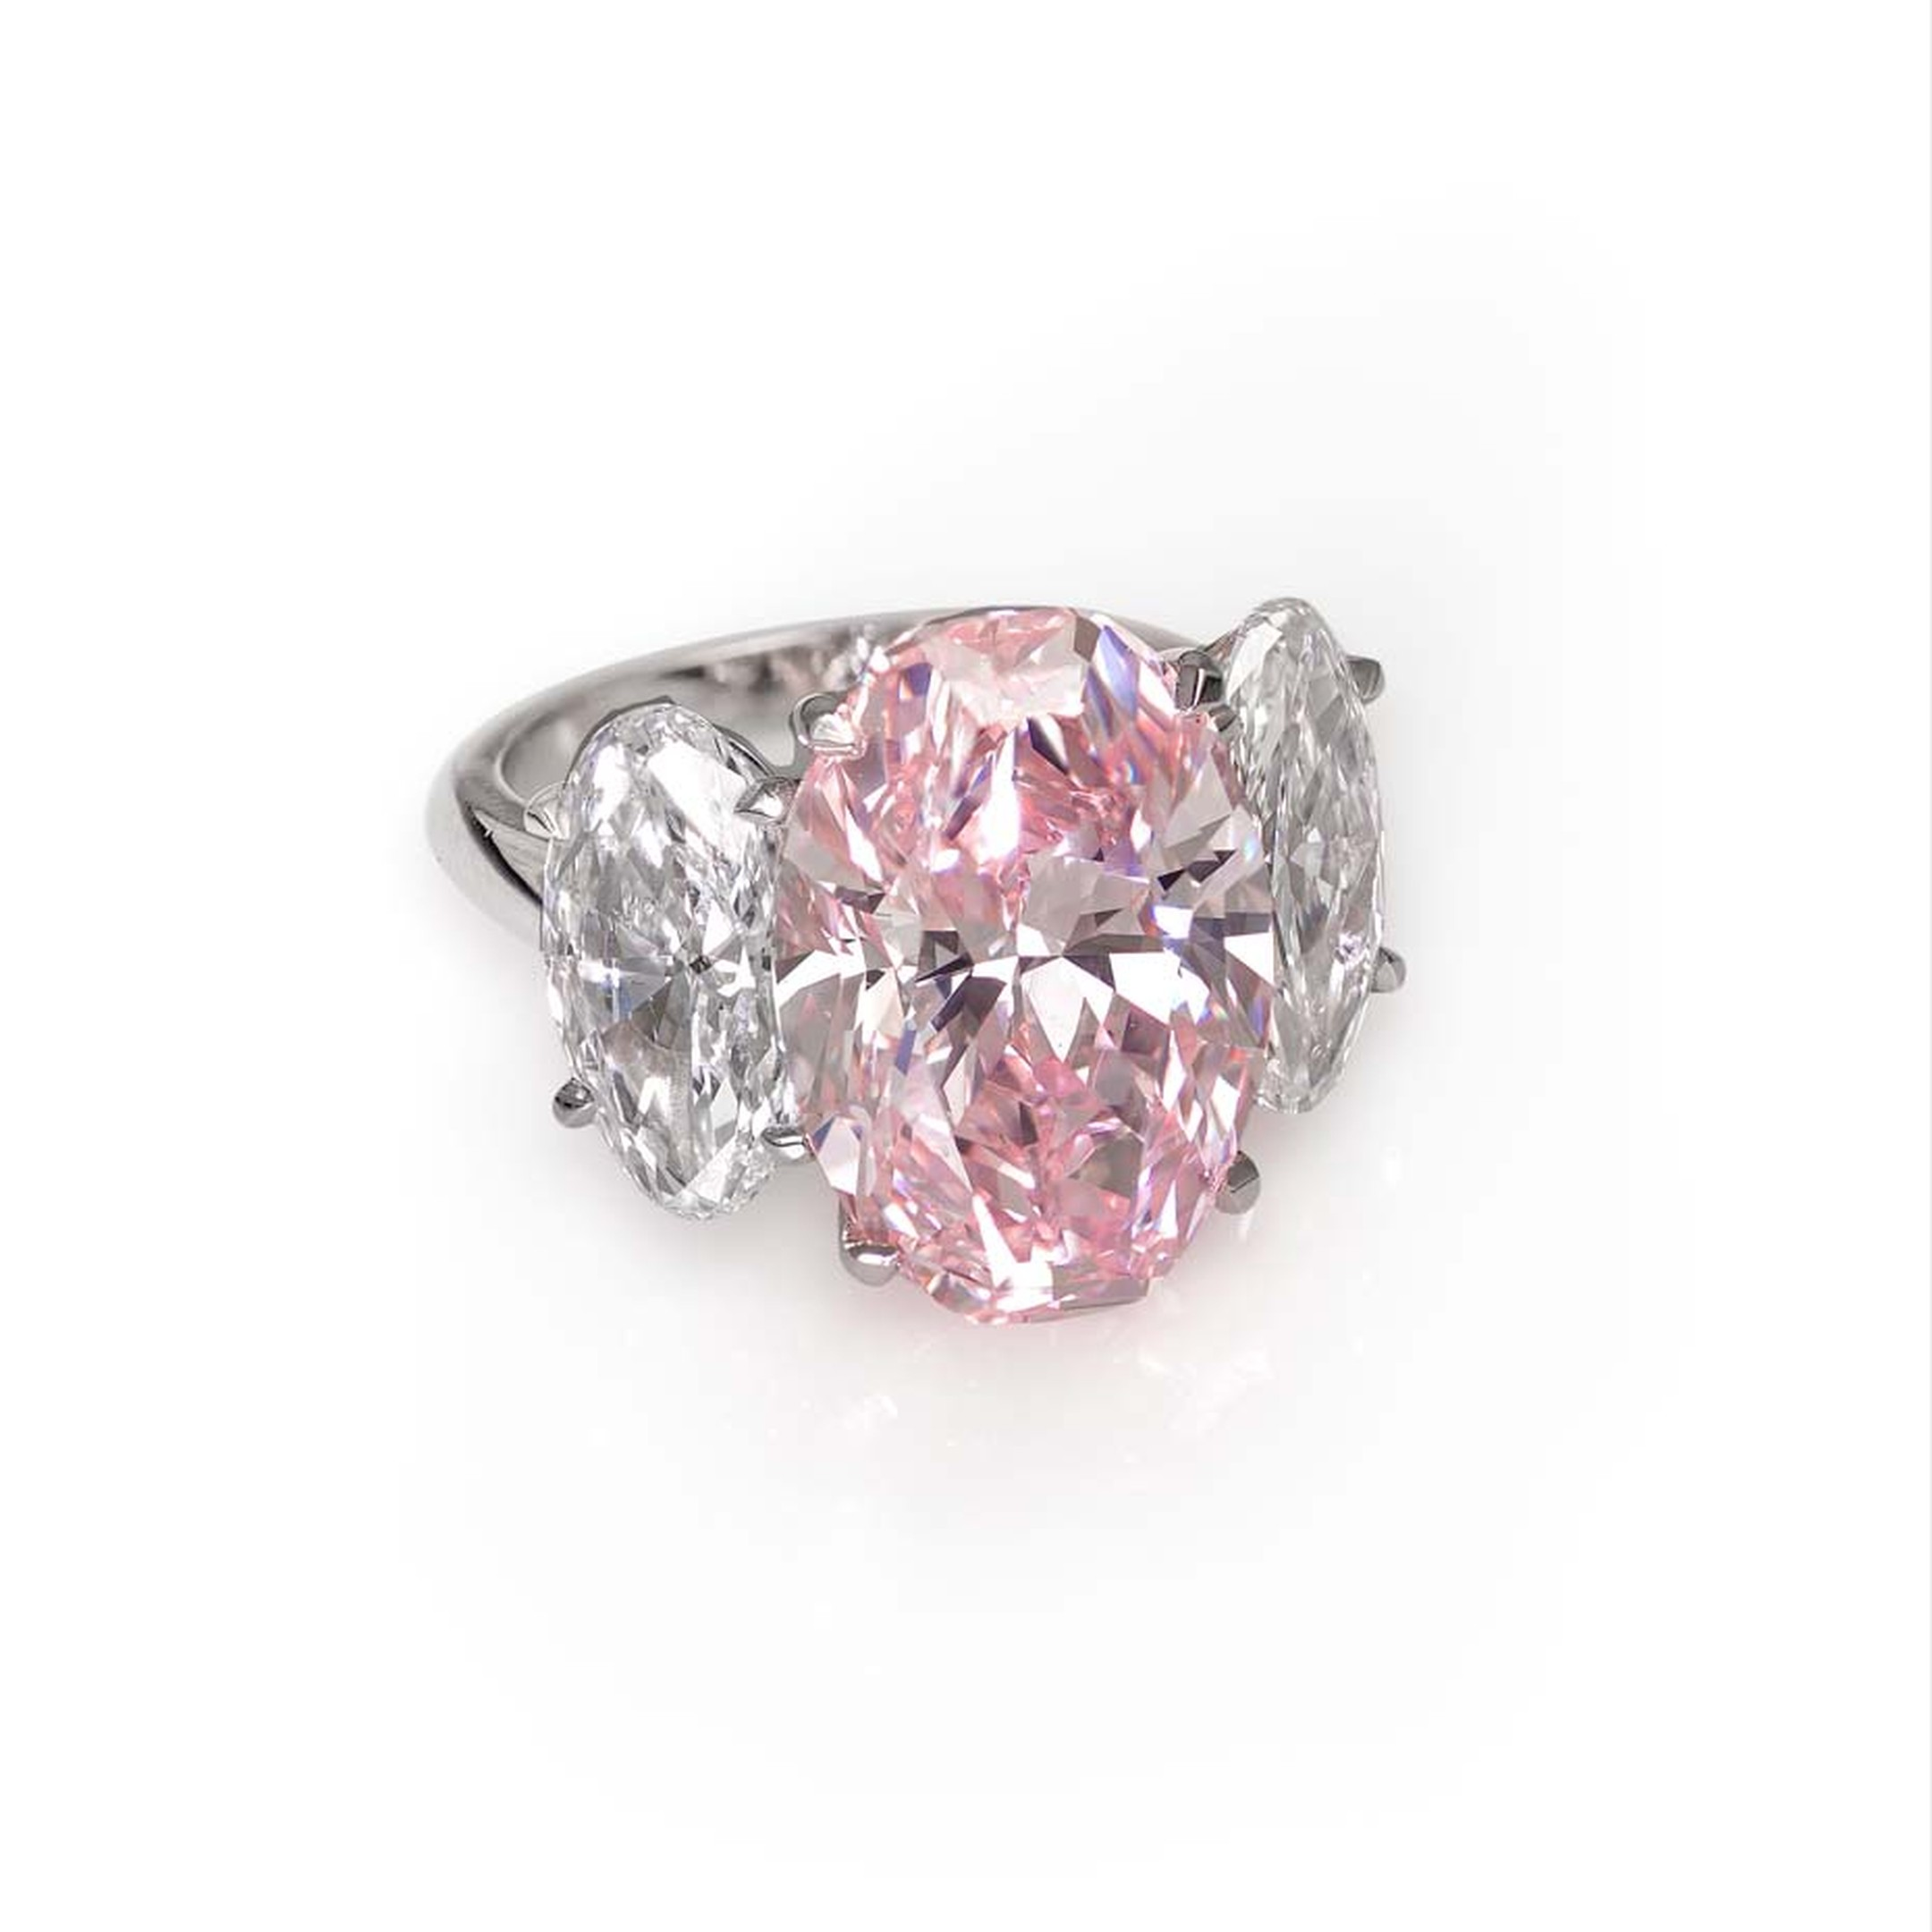 David Morris 10.11ct fancy pink flawless oval diamond ring, mounted in platinum, with 2ct each oval diamond shoulder stones.